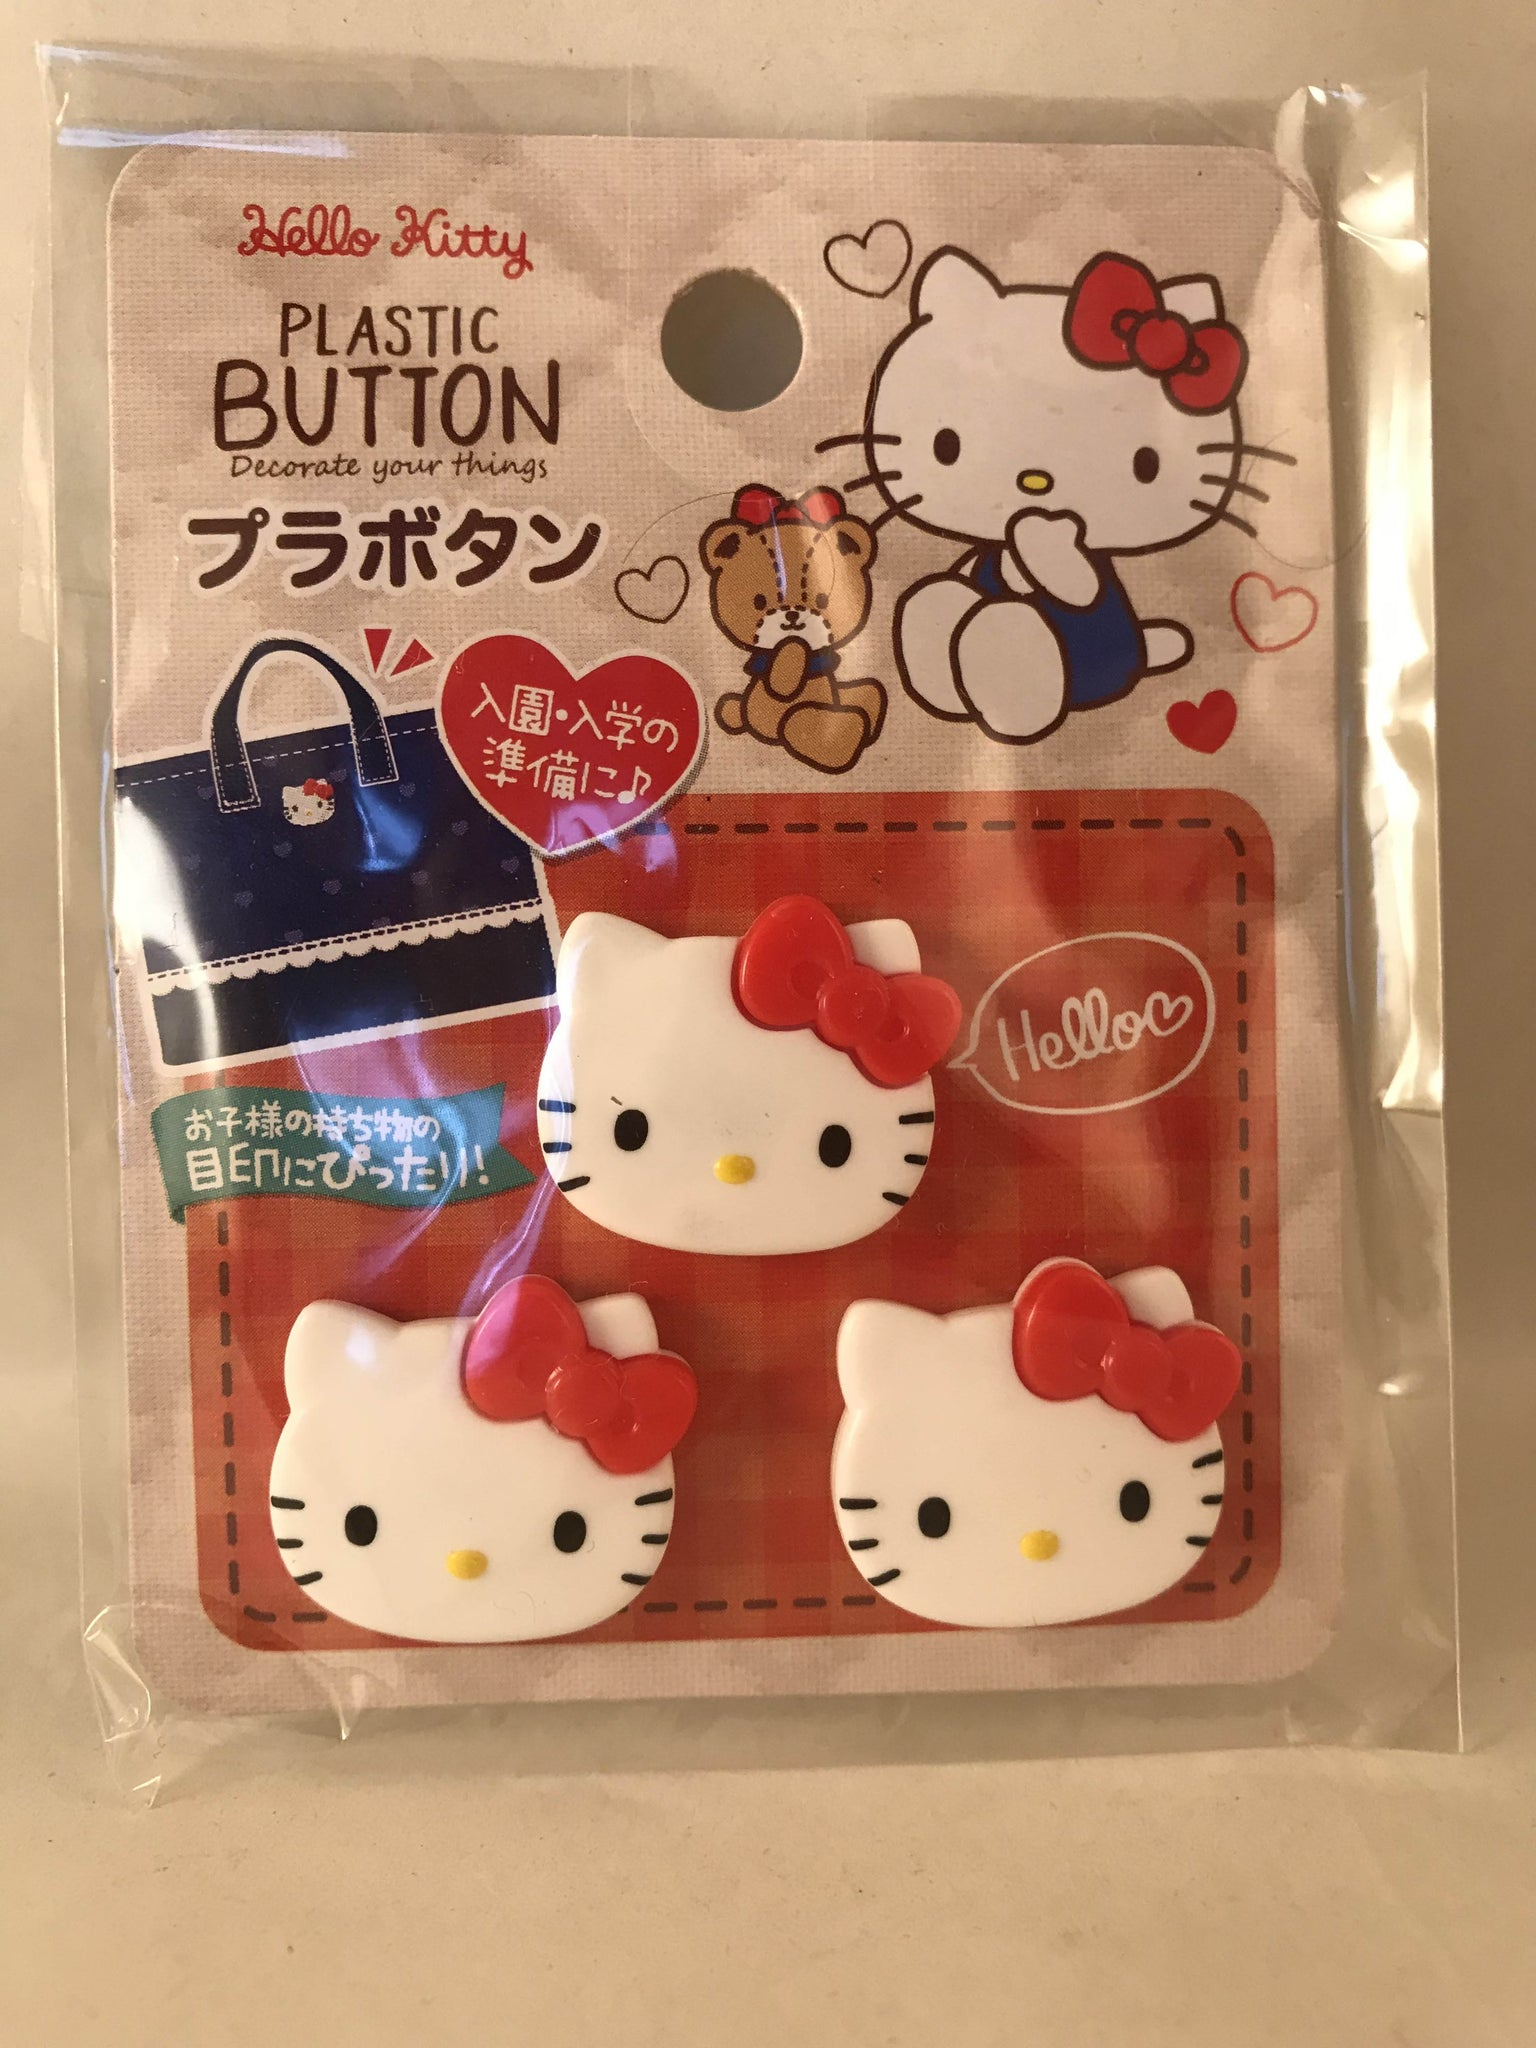 21f4d777f Hello Kitty Plastic Buttons – S&A Japan Sales